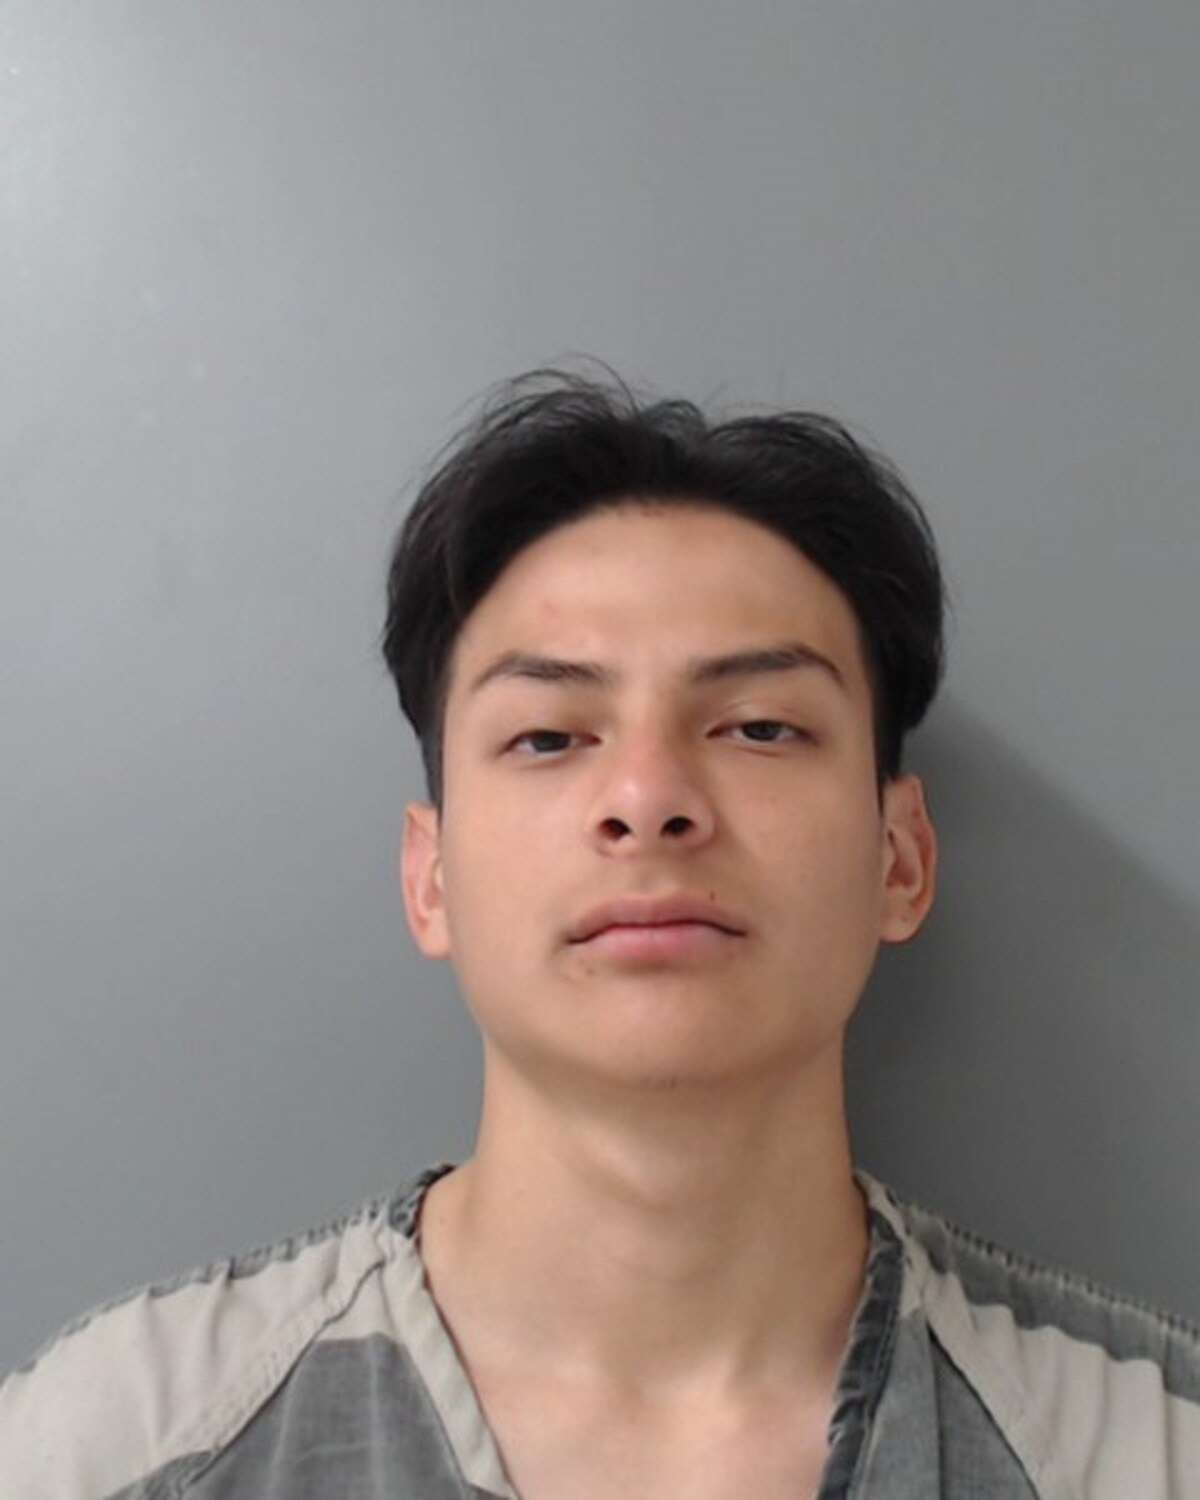 Luis Enrique Melo, 18, was charged with robbery and engaging in organized criminal activity.